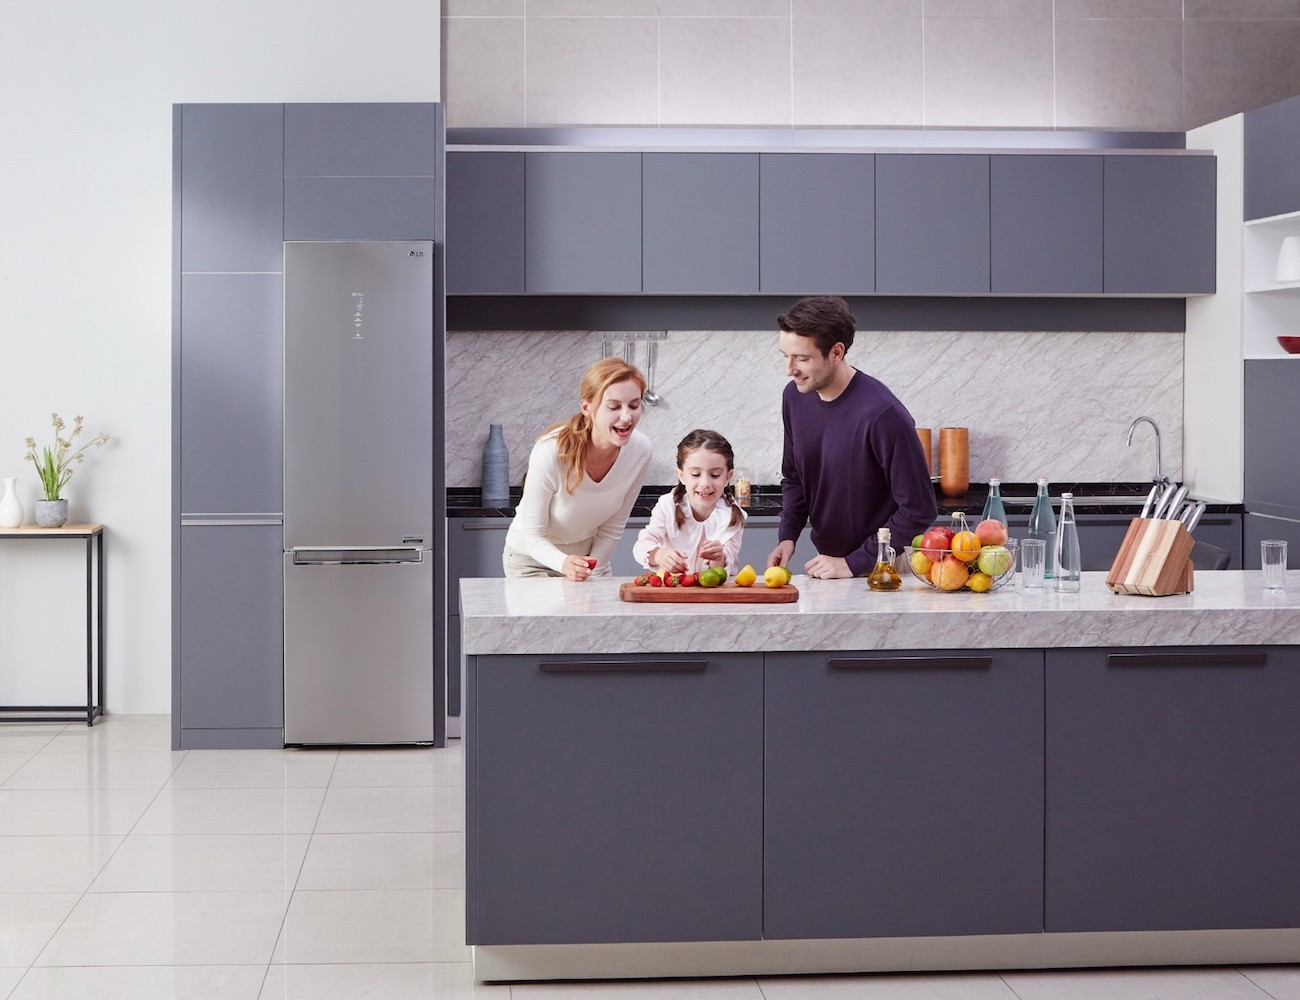 LG Centum System Energy Efficient Bottom-Freezer Refrigerator